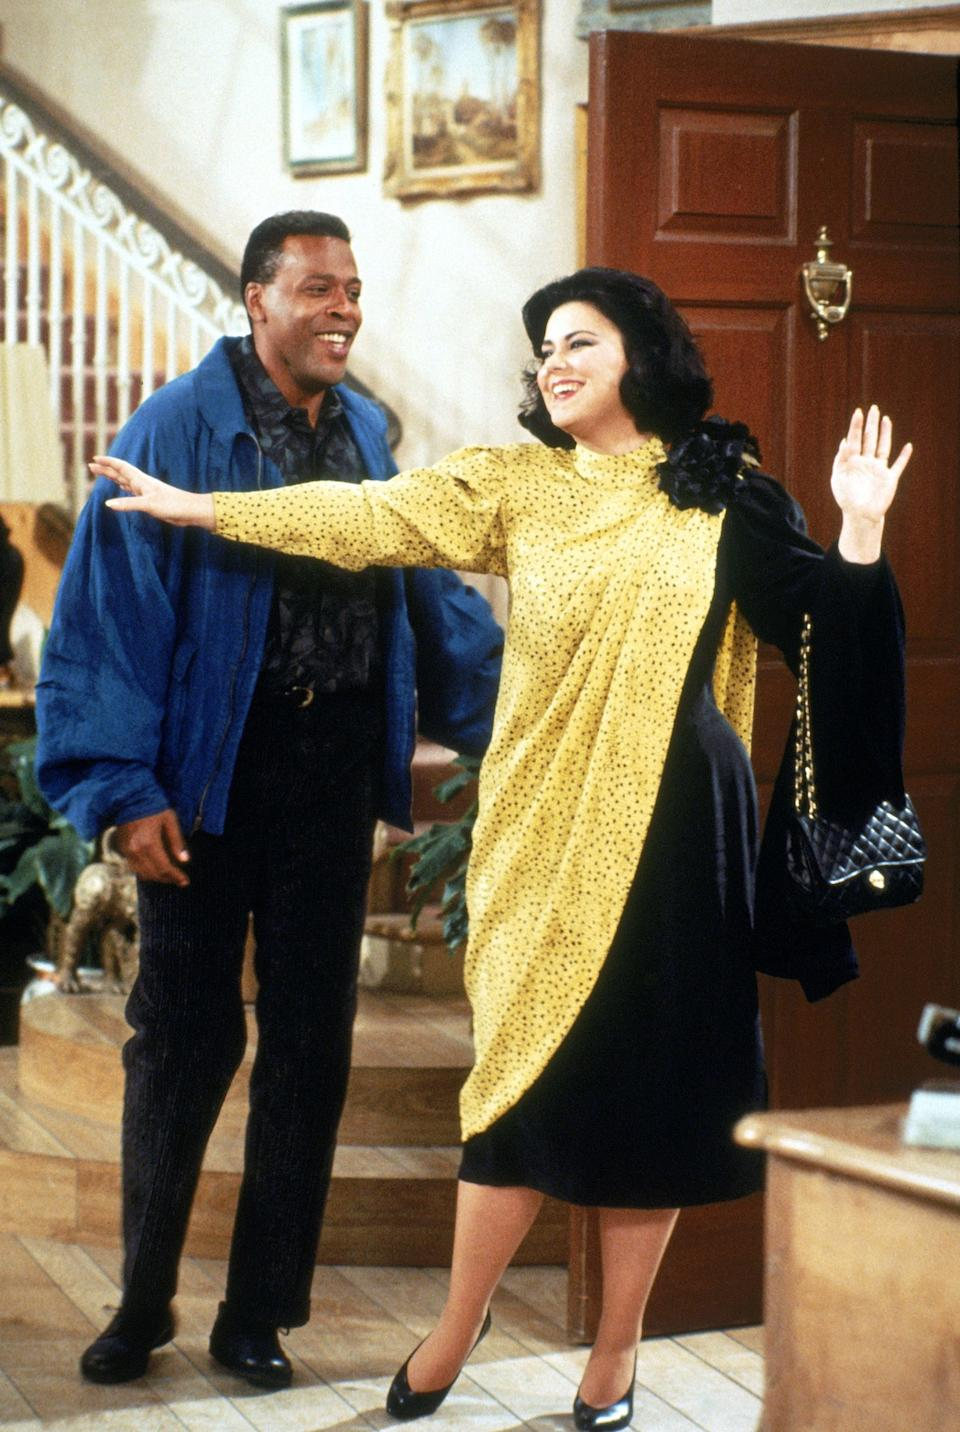 Anthony Bouvier (Meshach Taylor) and Suzanne Sugarbaker (Delta Burke)